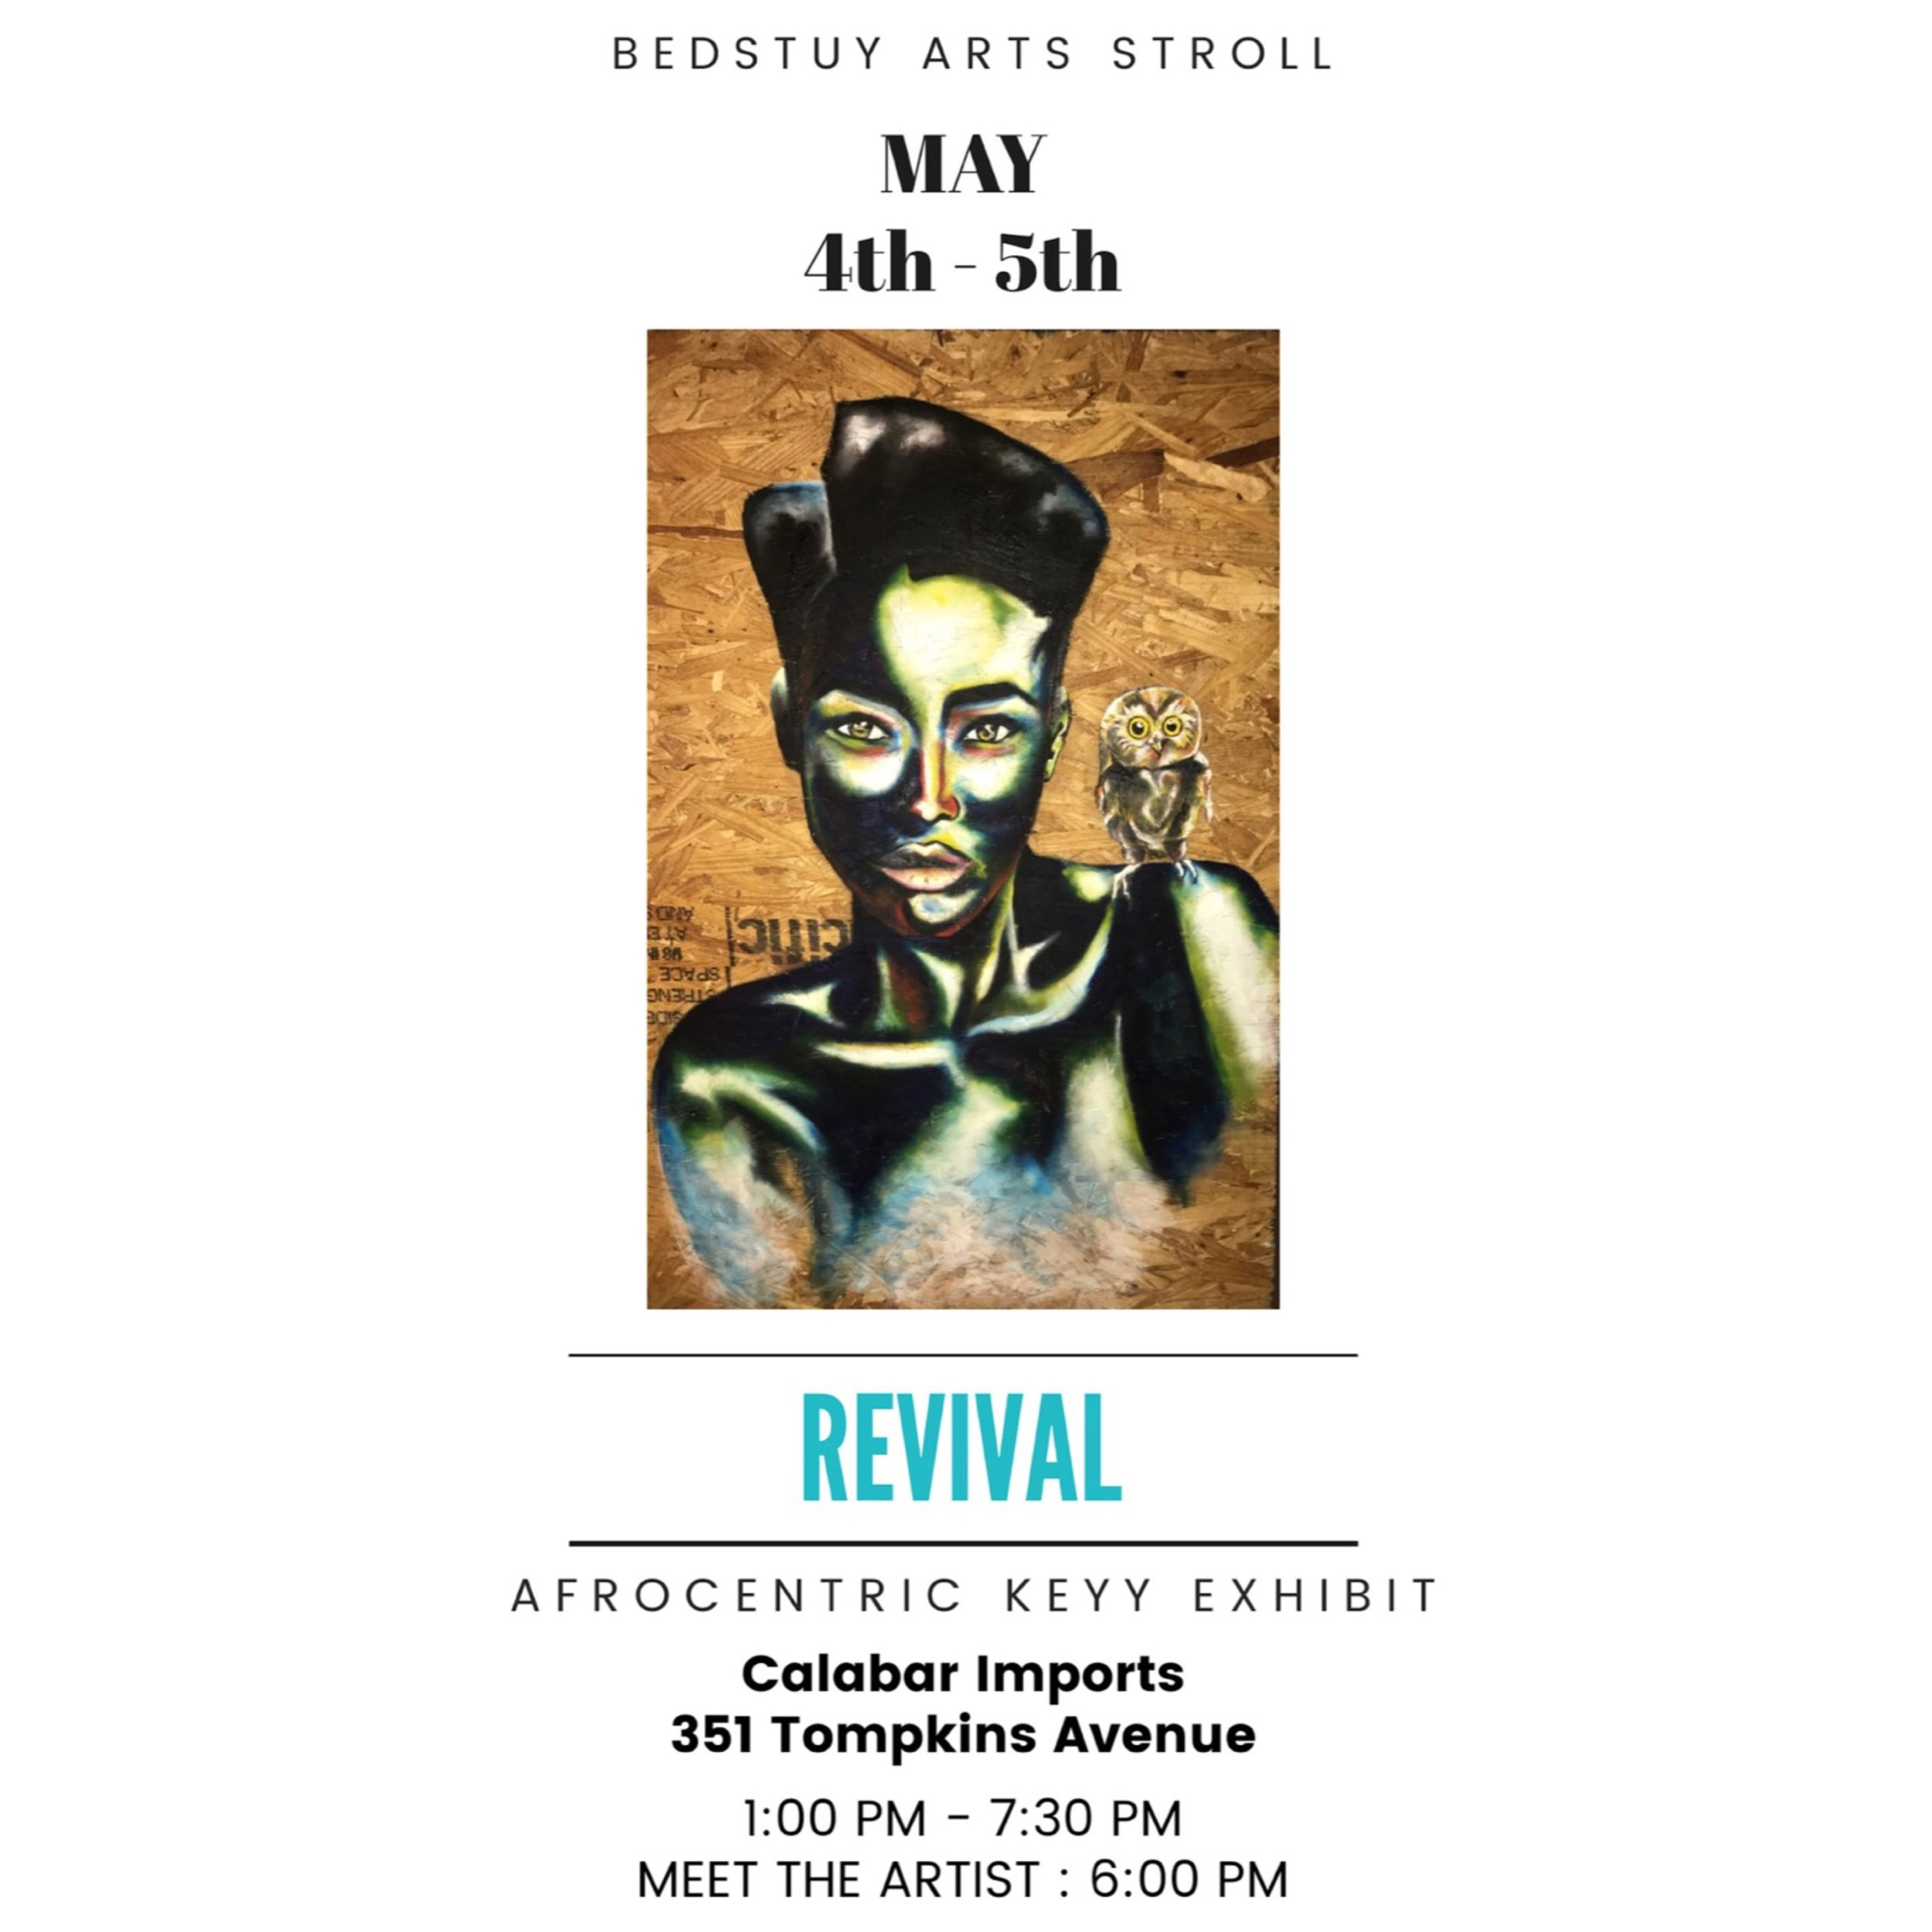 """Revival"", 2019 - Opening Reception is on Saturday, May 4, 2019 (5pm - 8pm). Show runs from May 4th - 31st.Meet the artist: May 4th - 5th at 6:00pm"